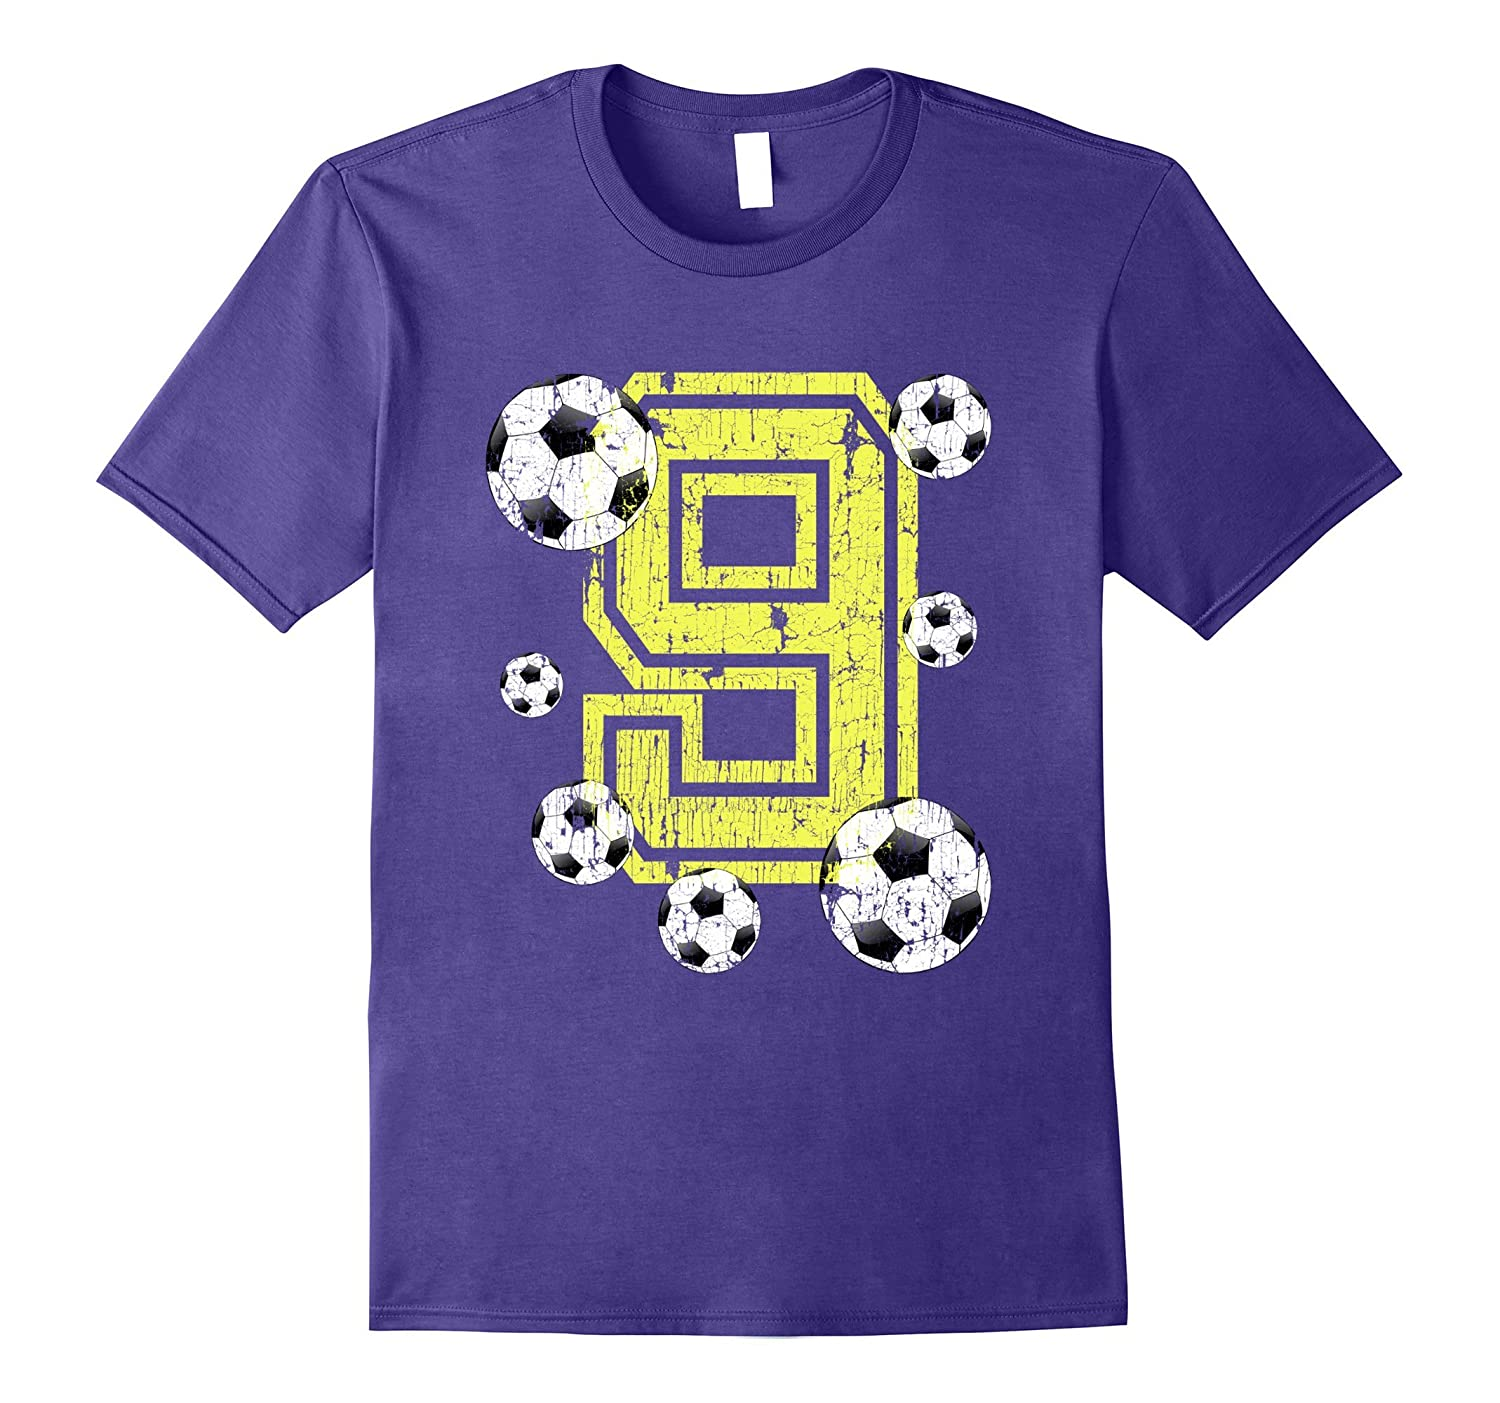 9th Birthday Soccer Fan T-Shirt Gift for Girls and Boys-TH